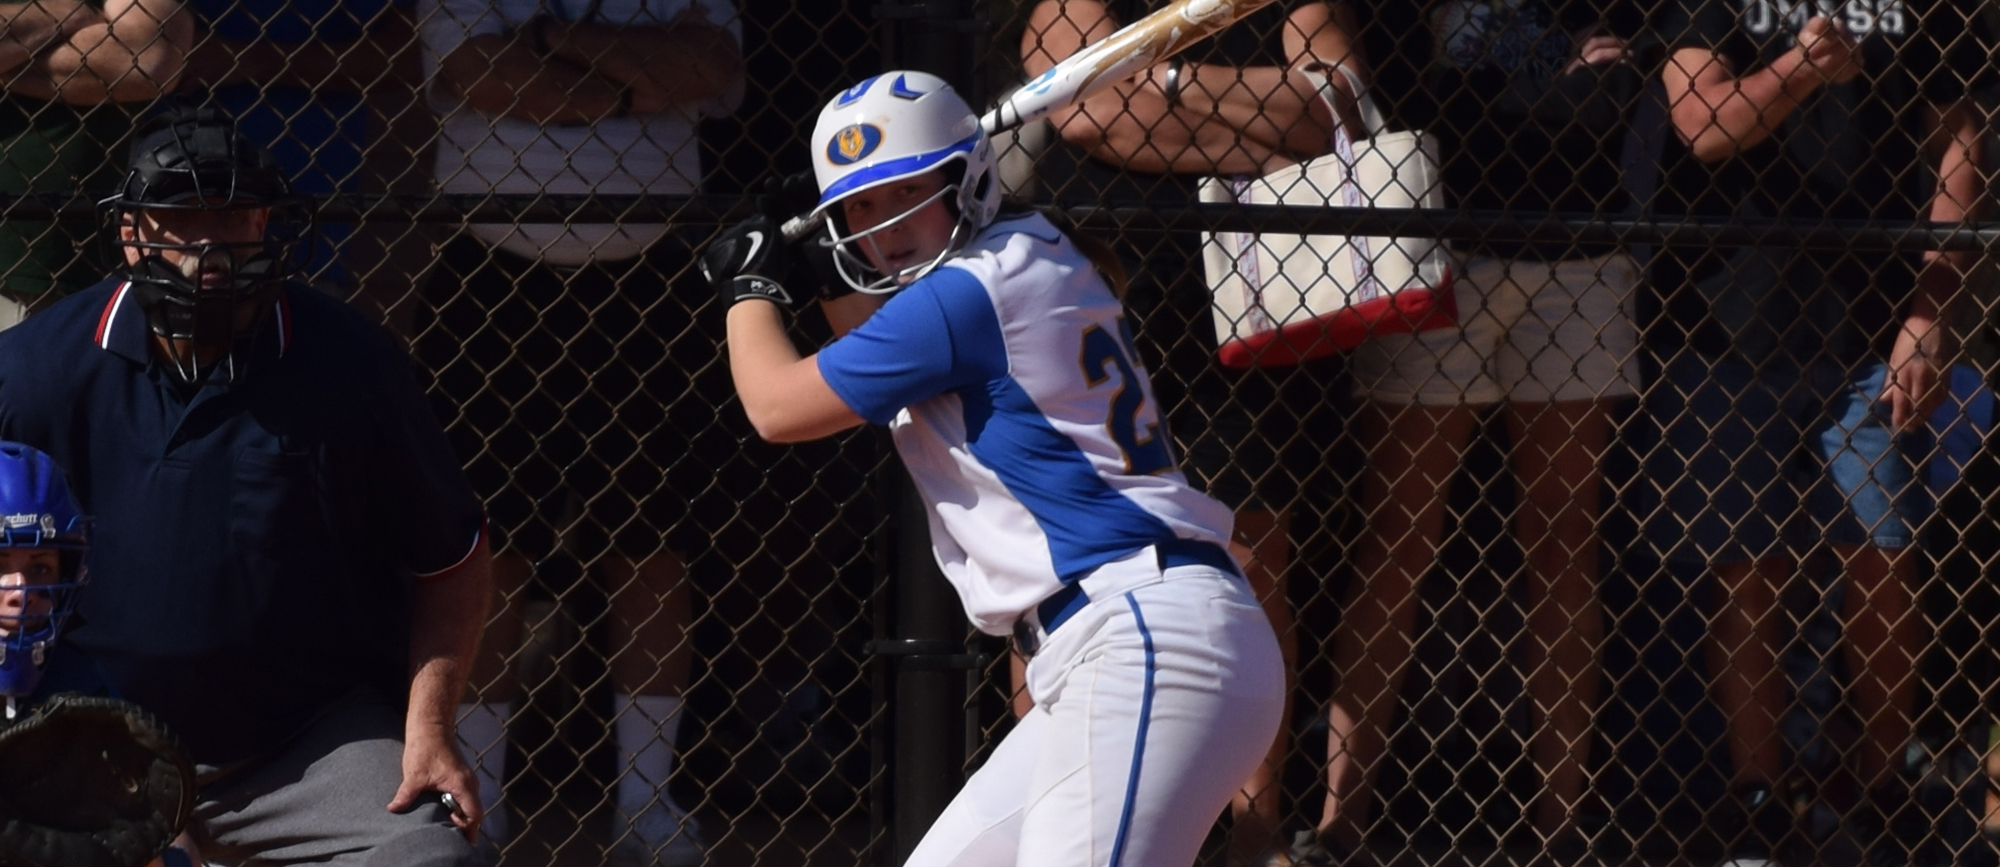 Aimee Kistner hit a three-run home run in Western New England's 5-2 win over Suffolk on Saturday.